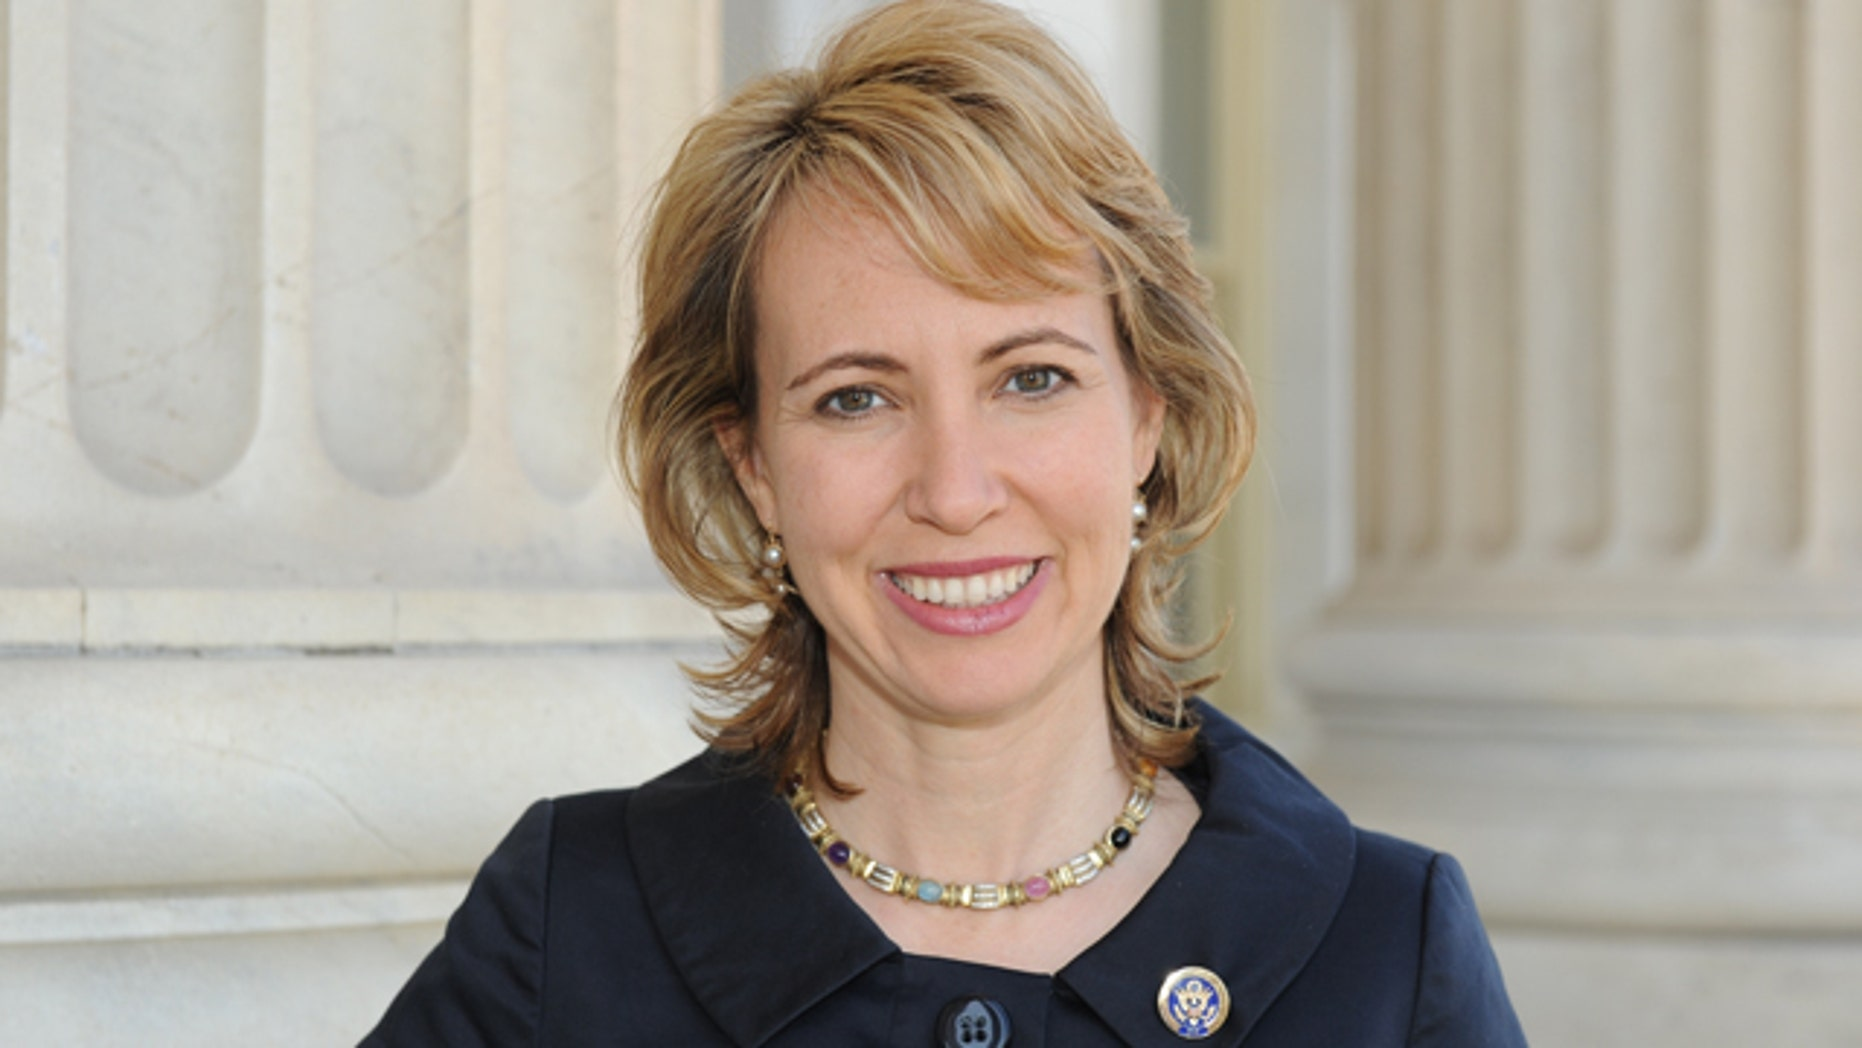 Rep. Gabrielle Giffords stood up in her hospital room Wednesday and looked out her window